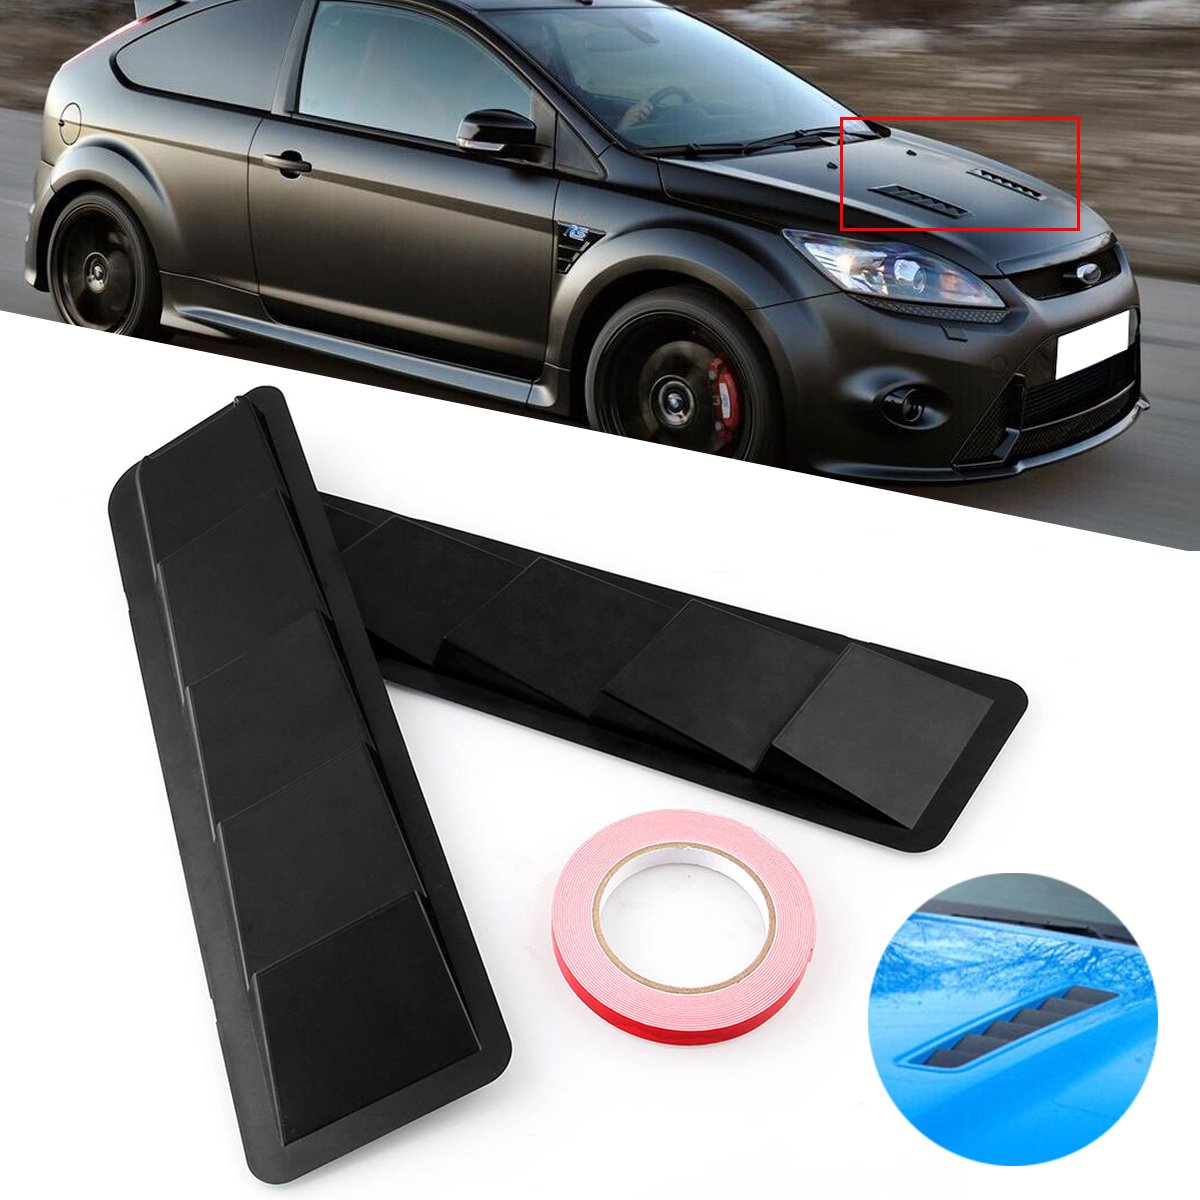 Universal Intake Panel Window Air Ventilated Blinds Air Outlet Trim Set Matte Black ABS